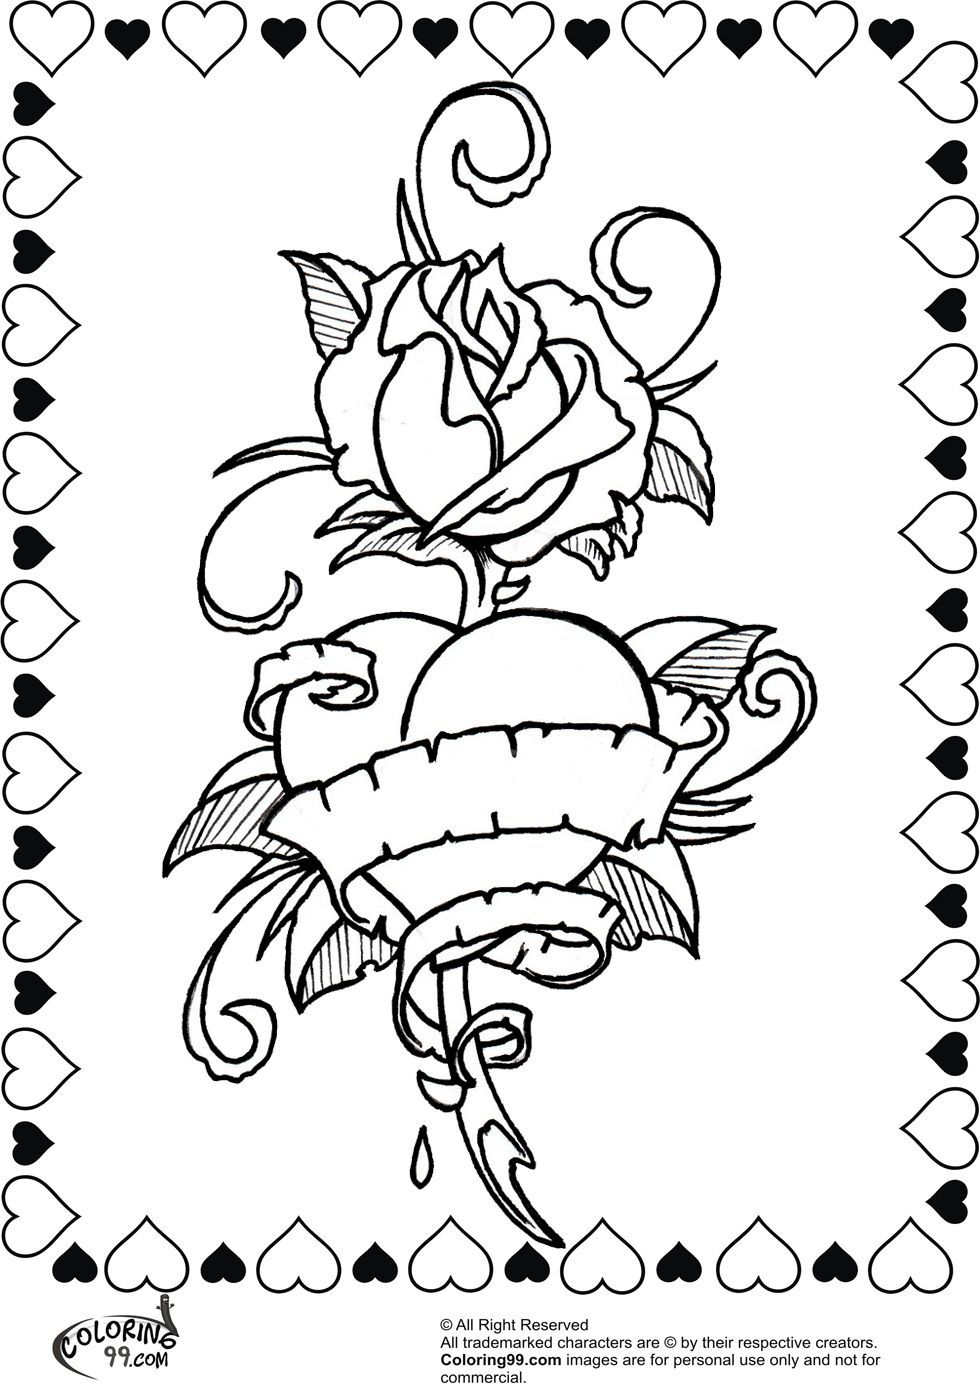 Valentine S Day Coloring Pages For Adults For Them That Will Also Teach Them For The First Heart Coloring Pages Love Coloring Pages Skull Coloring Pages